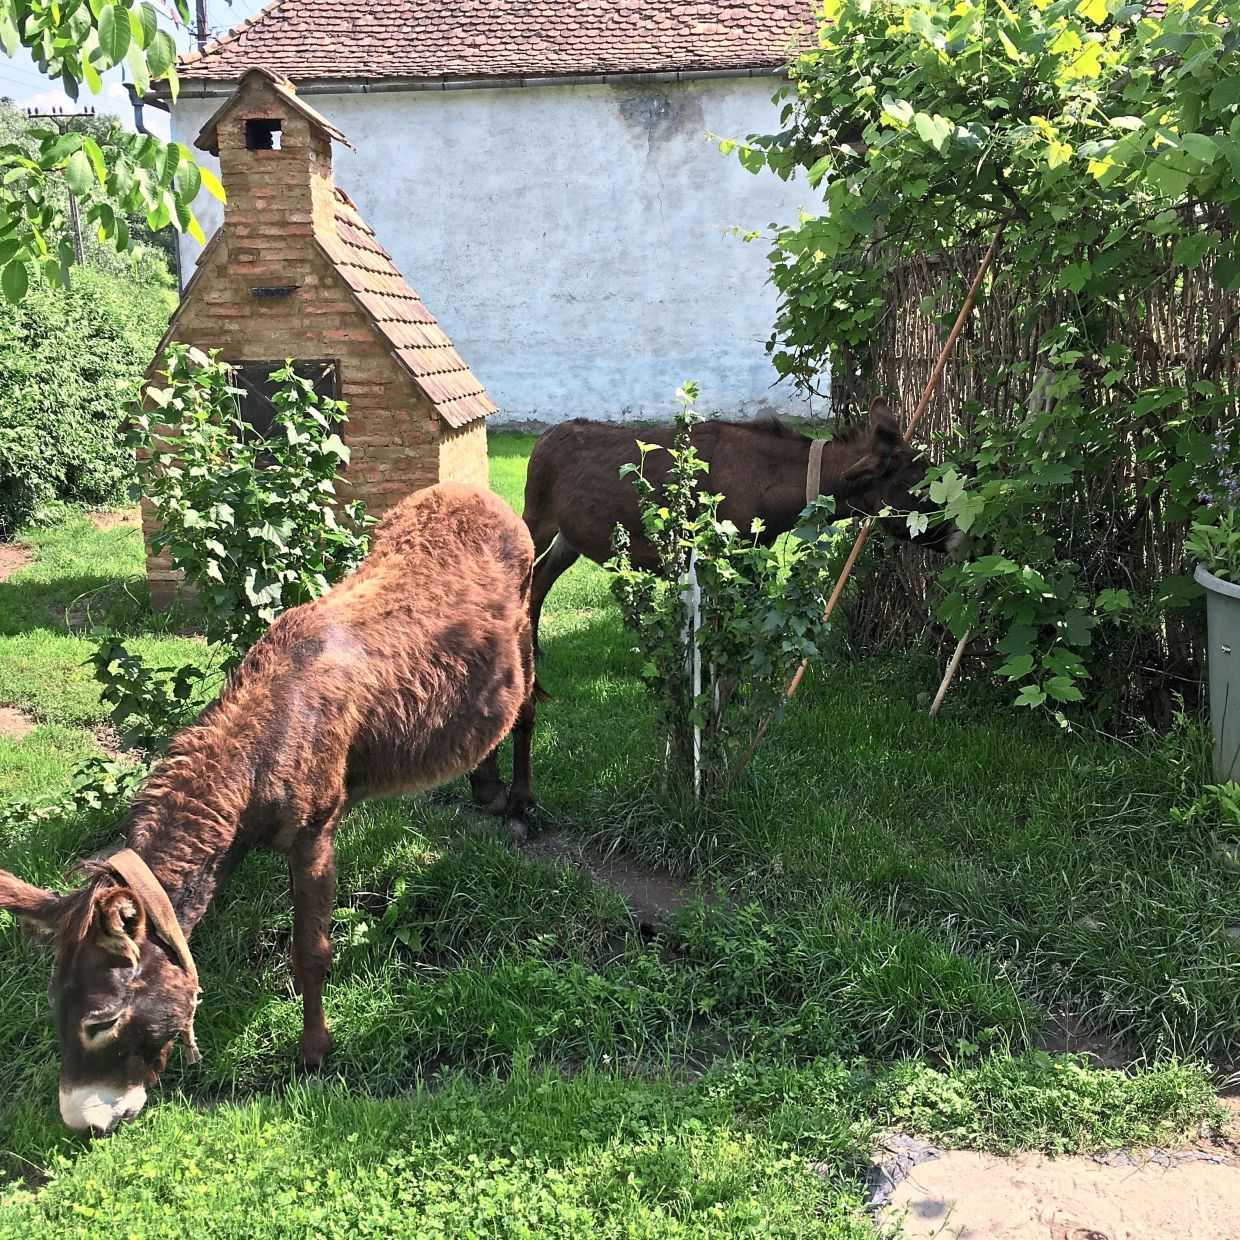 A couple of donkeys at the sanctuary. In the background is a traditional oven which Harfmann uses for baking his own bread.